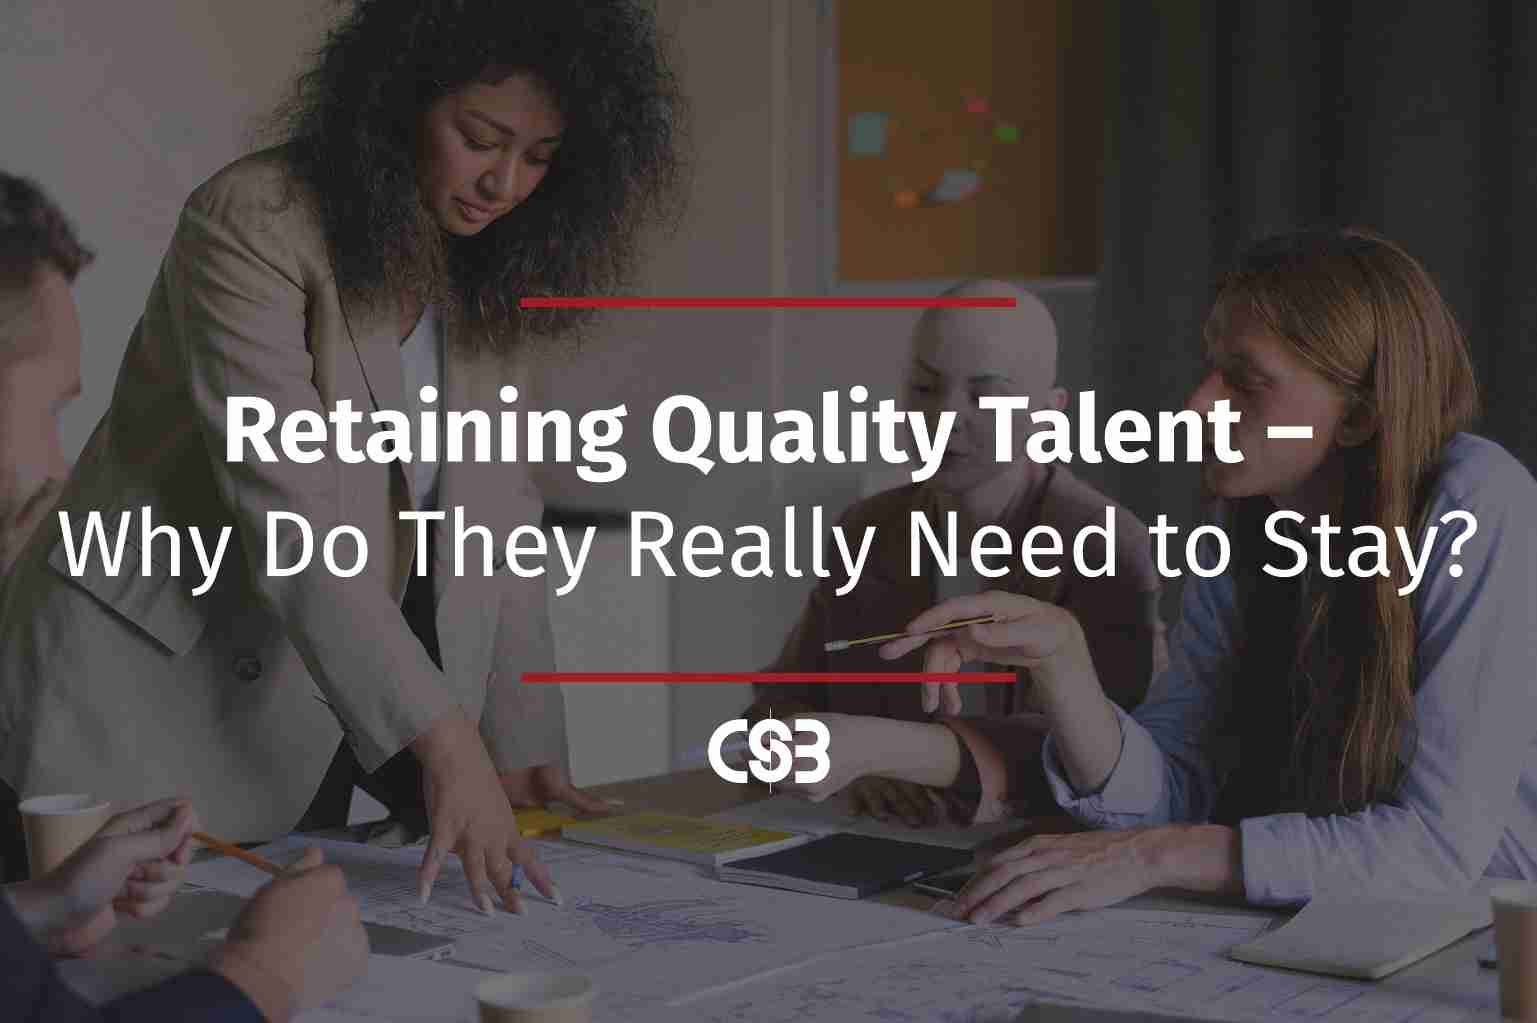 Retaining-Quality-Talent--Why-Do-They-Really-Need-to-Stay